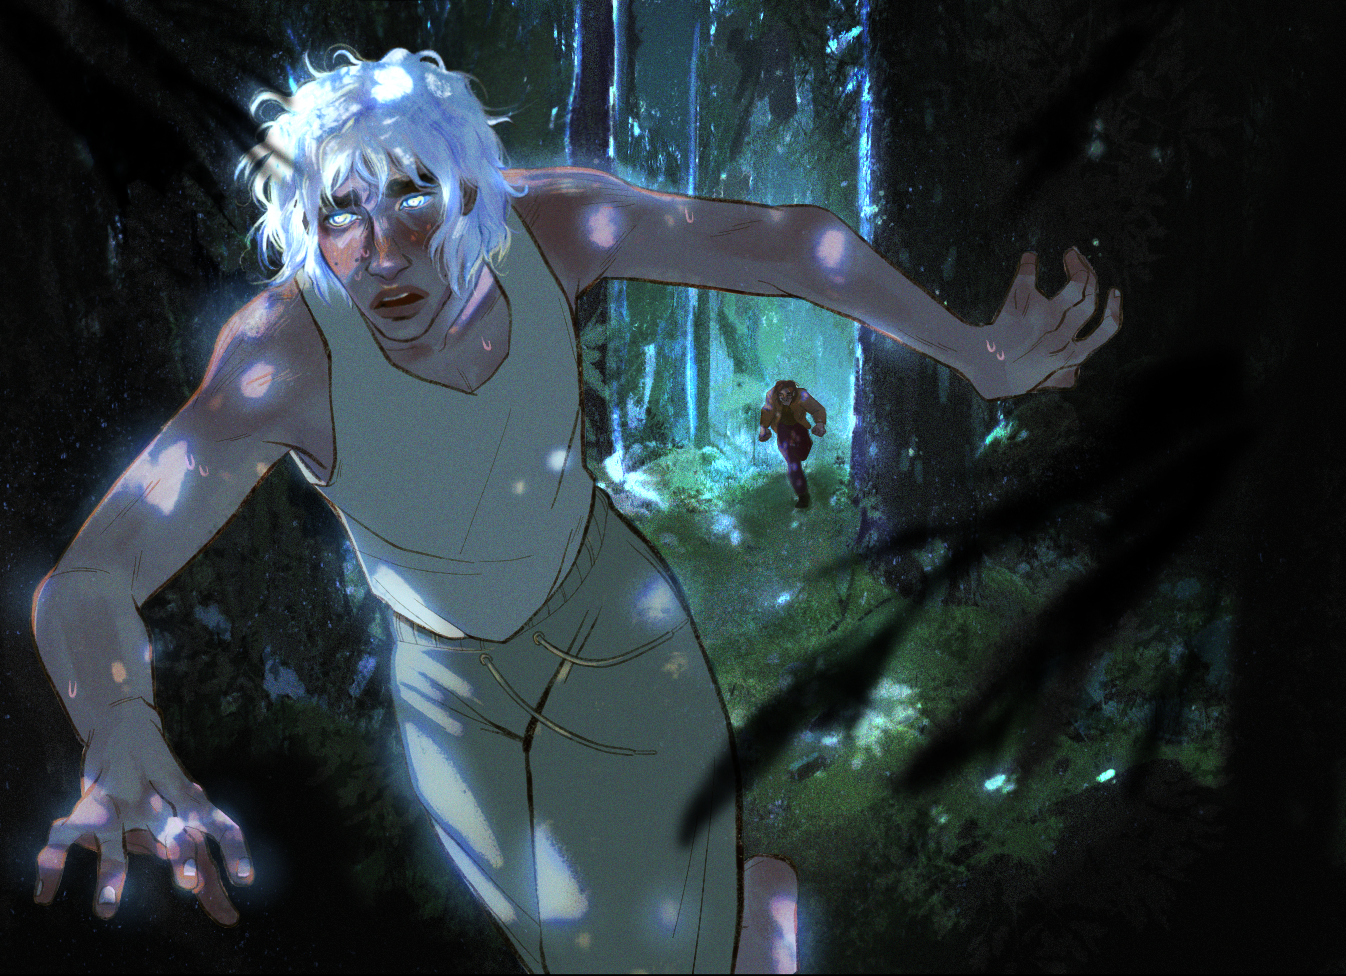 In a dimly lit forest, speckled by moonlight there is a young man with white hair glowing in the night along with his eyes shining and worried as he runs far through the forest only in his pajamas, behind him there is a man running after him right where t